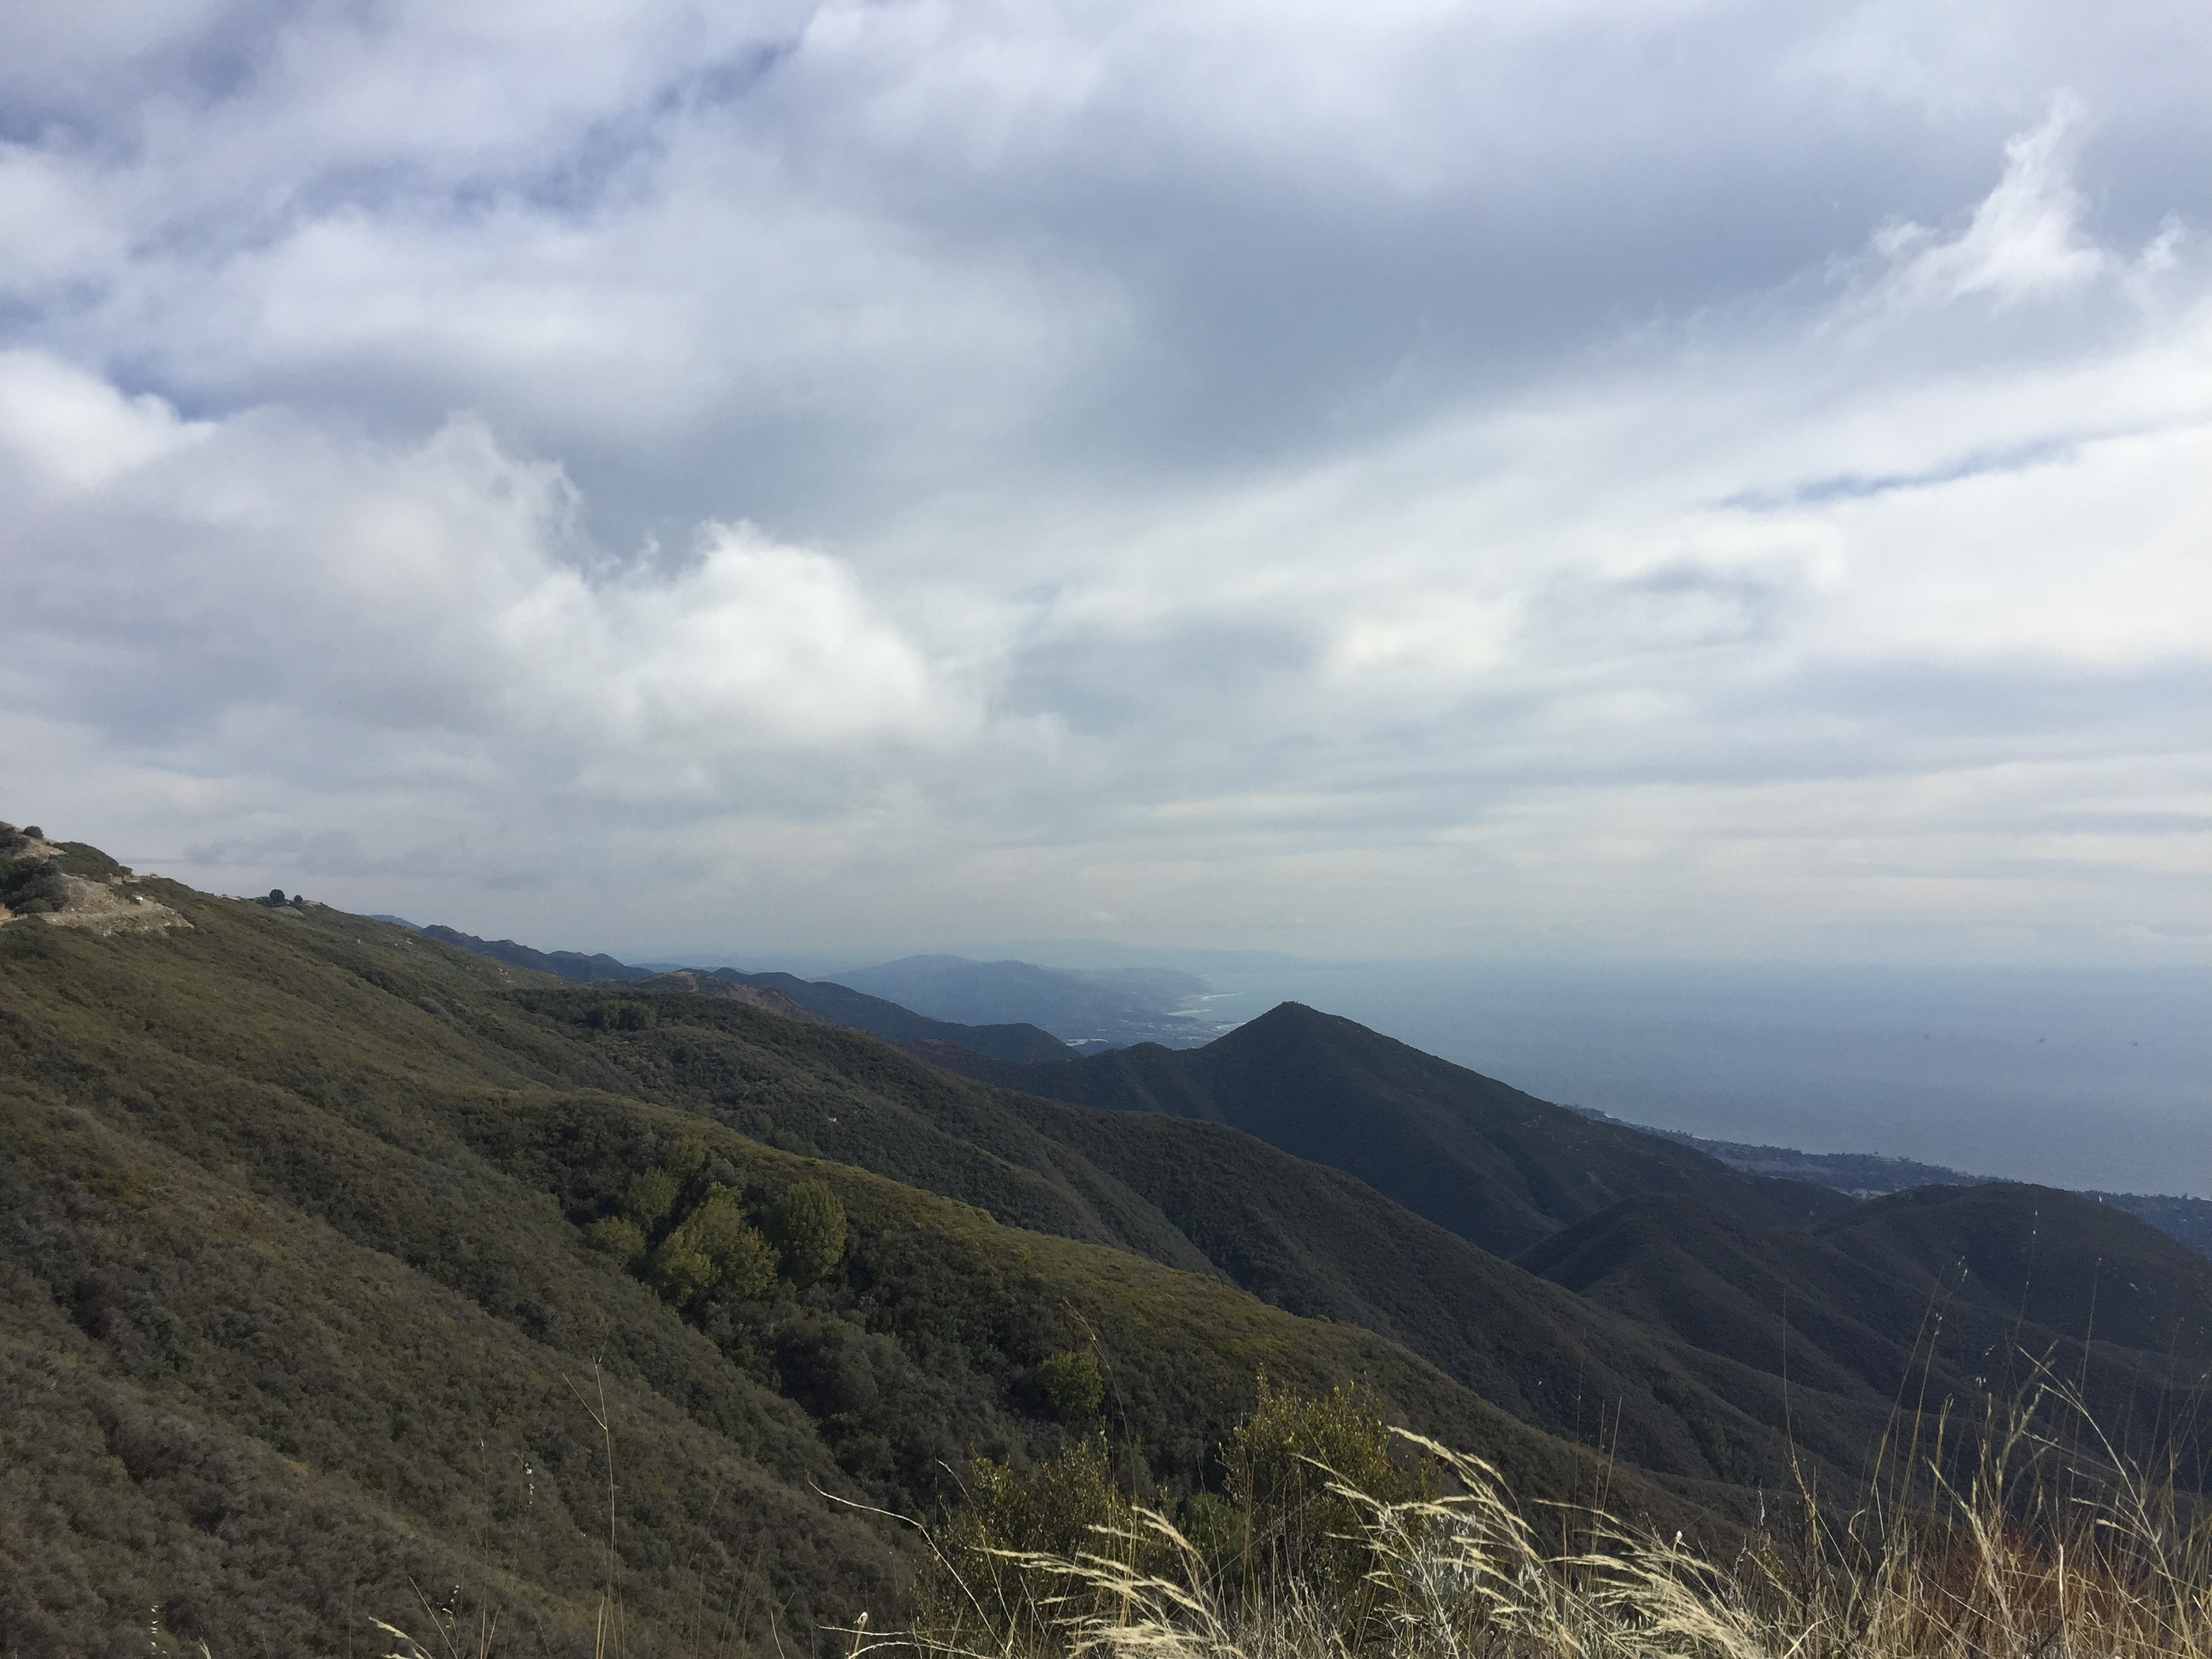 Clouds over the Montecito hills with ocean in bacground